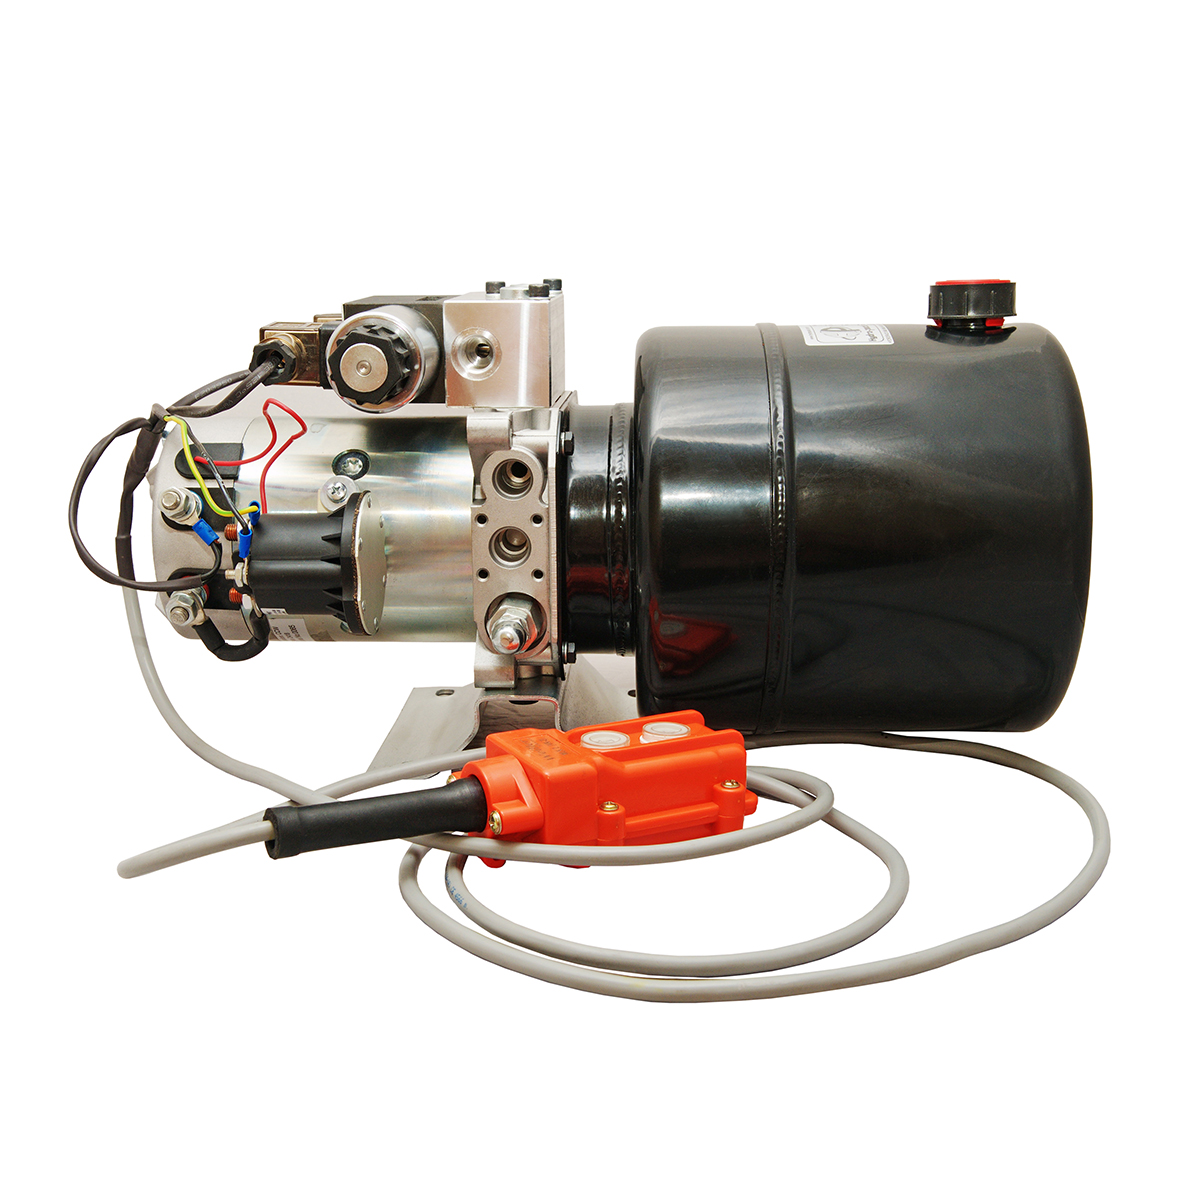 double acting 4 quarts hydraulic power unit 12V DC by Hydro-Pack